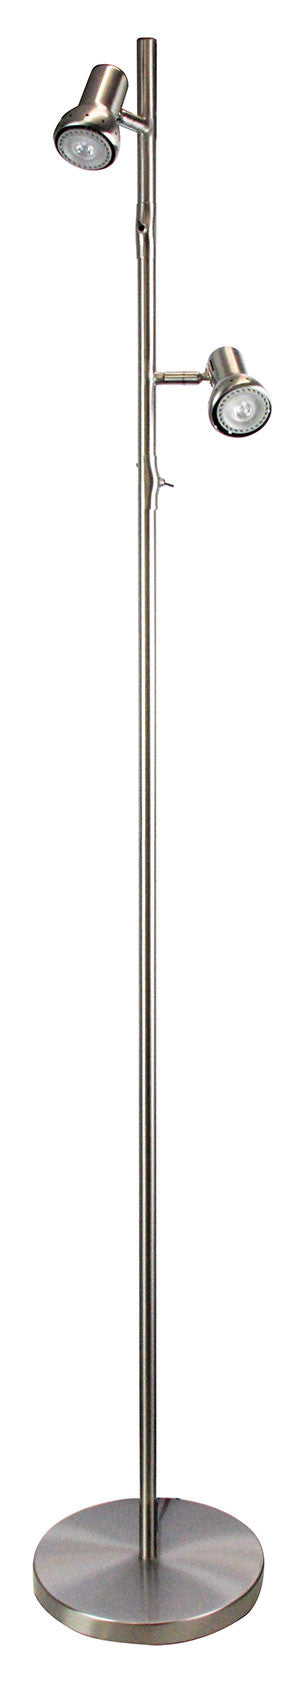 Daxam LED Floor Lamp - Oriel Lighting.